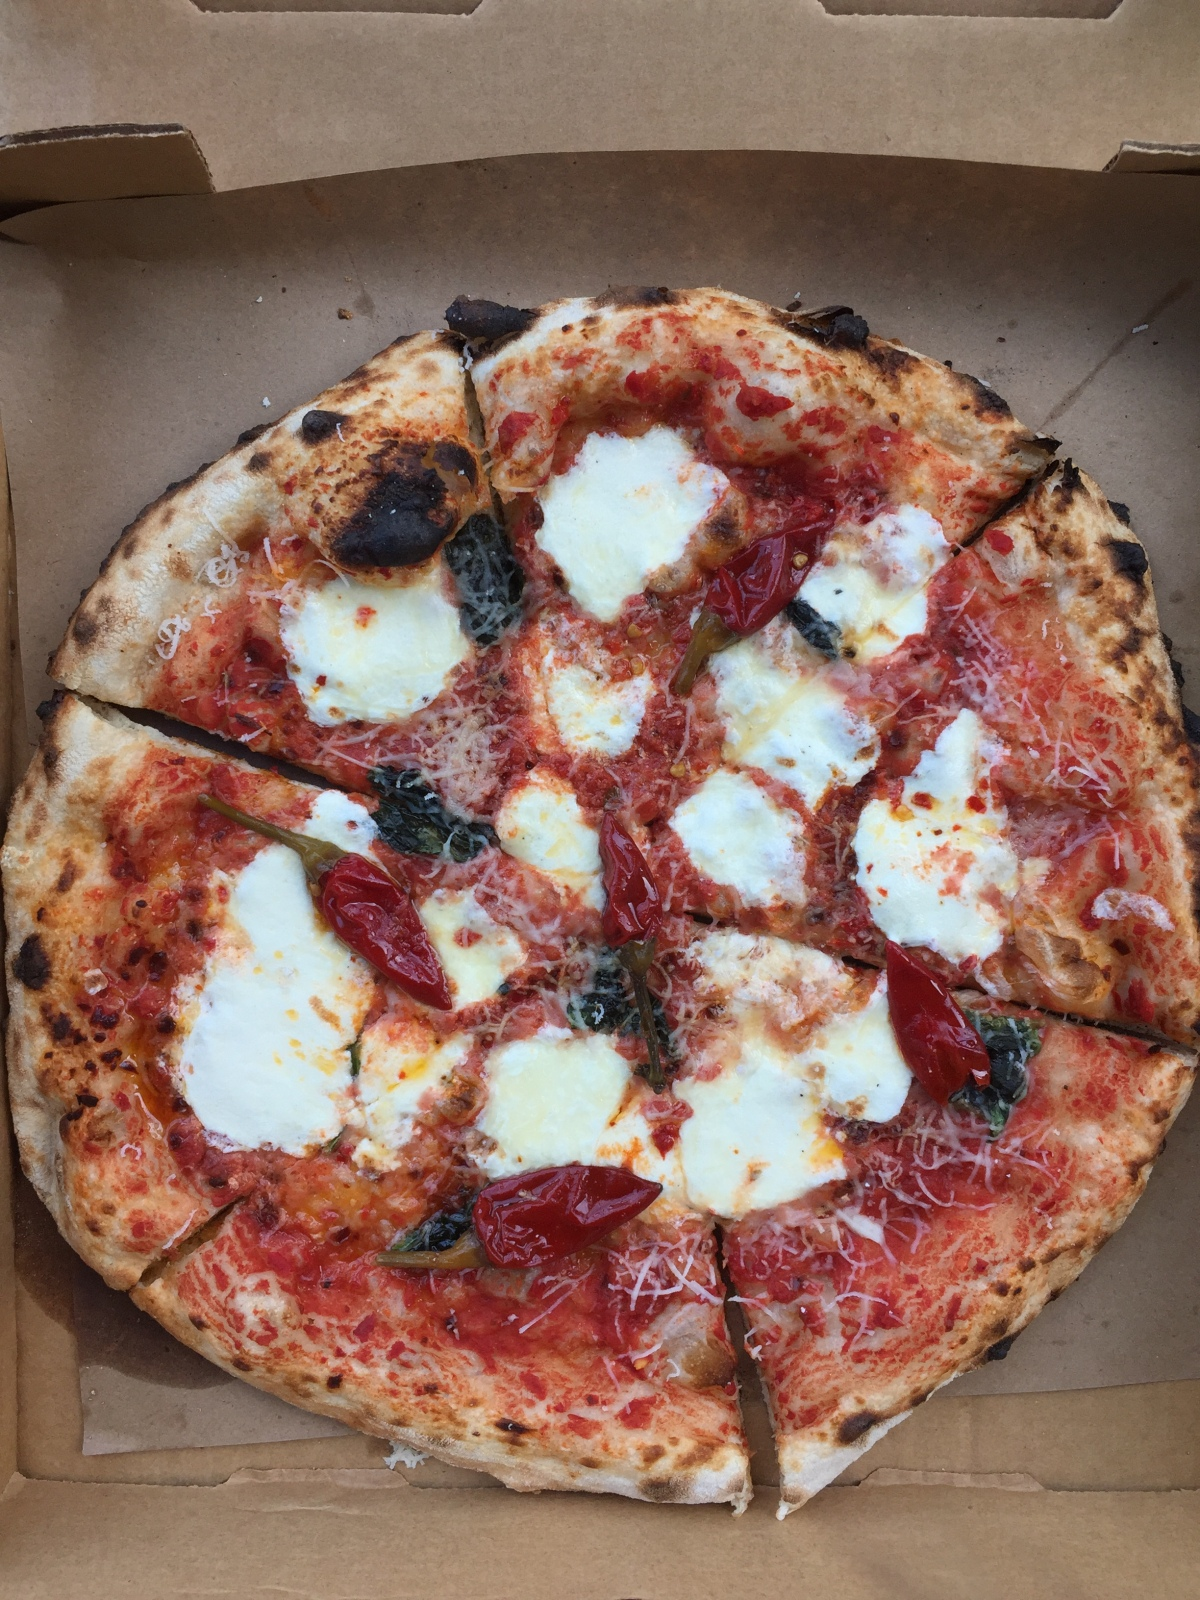 Polpo Pop-up Pizza Packs Peppered Punch